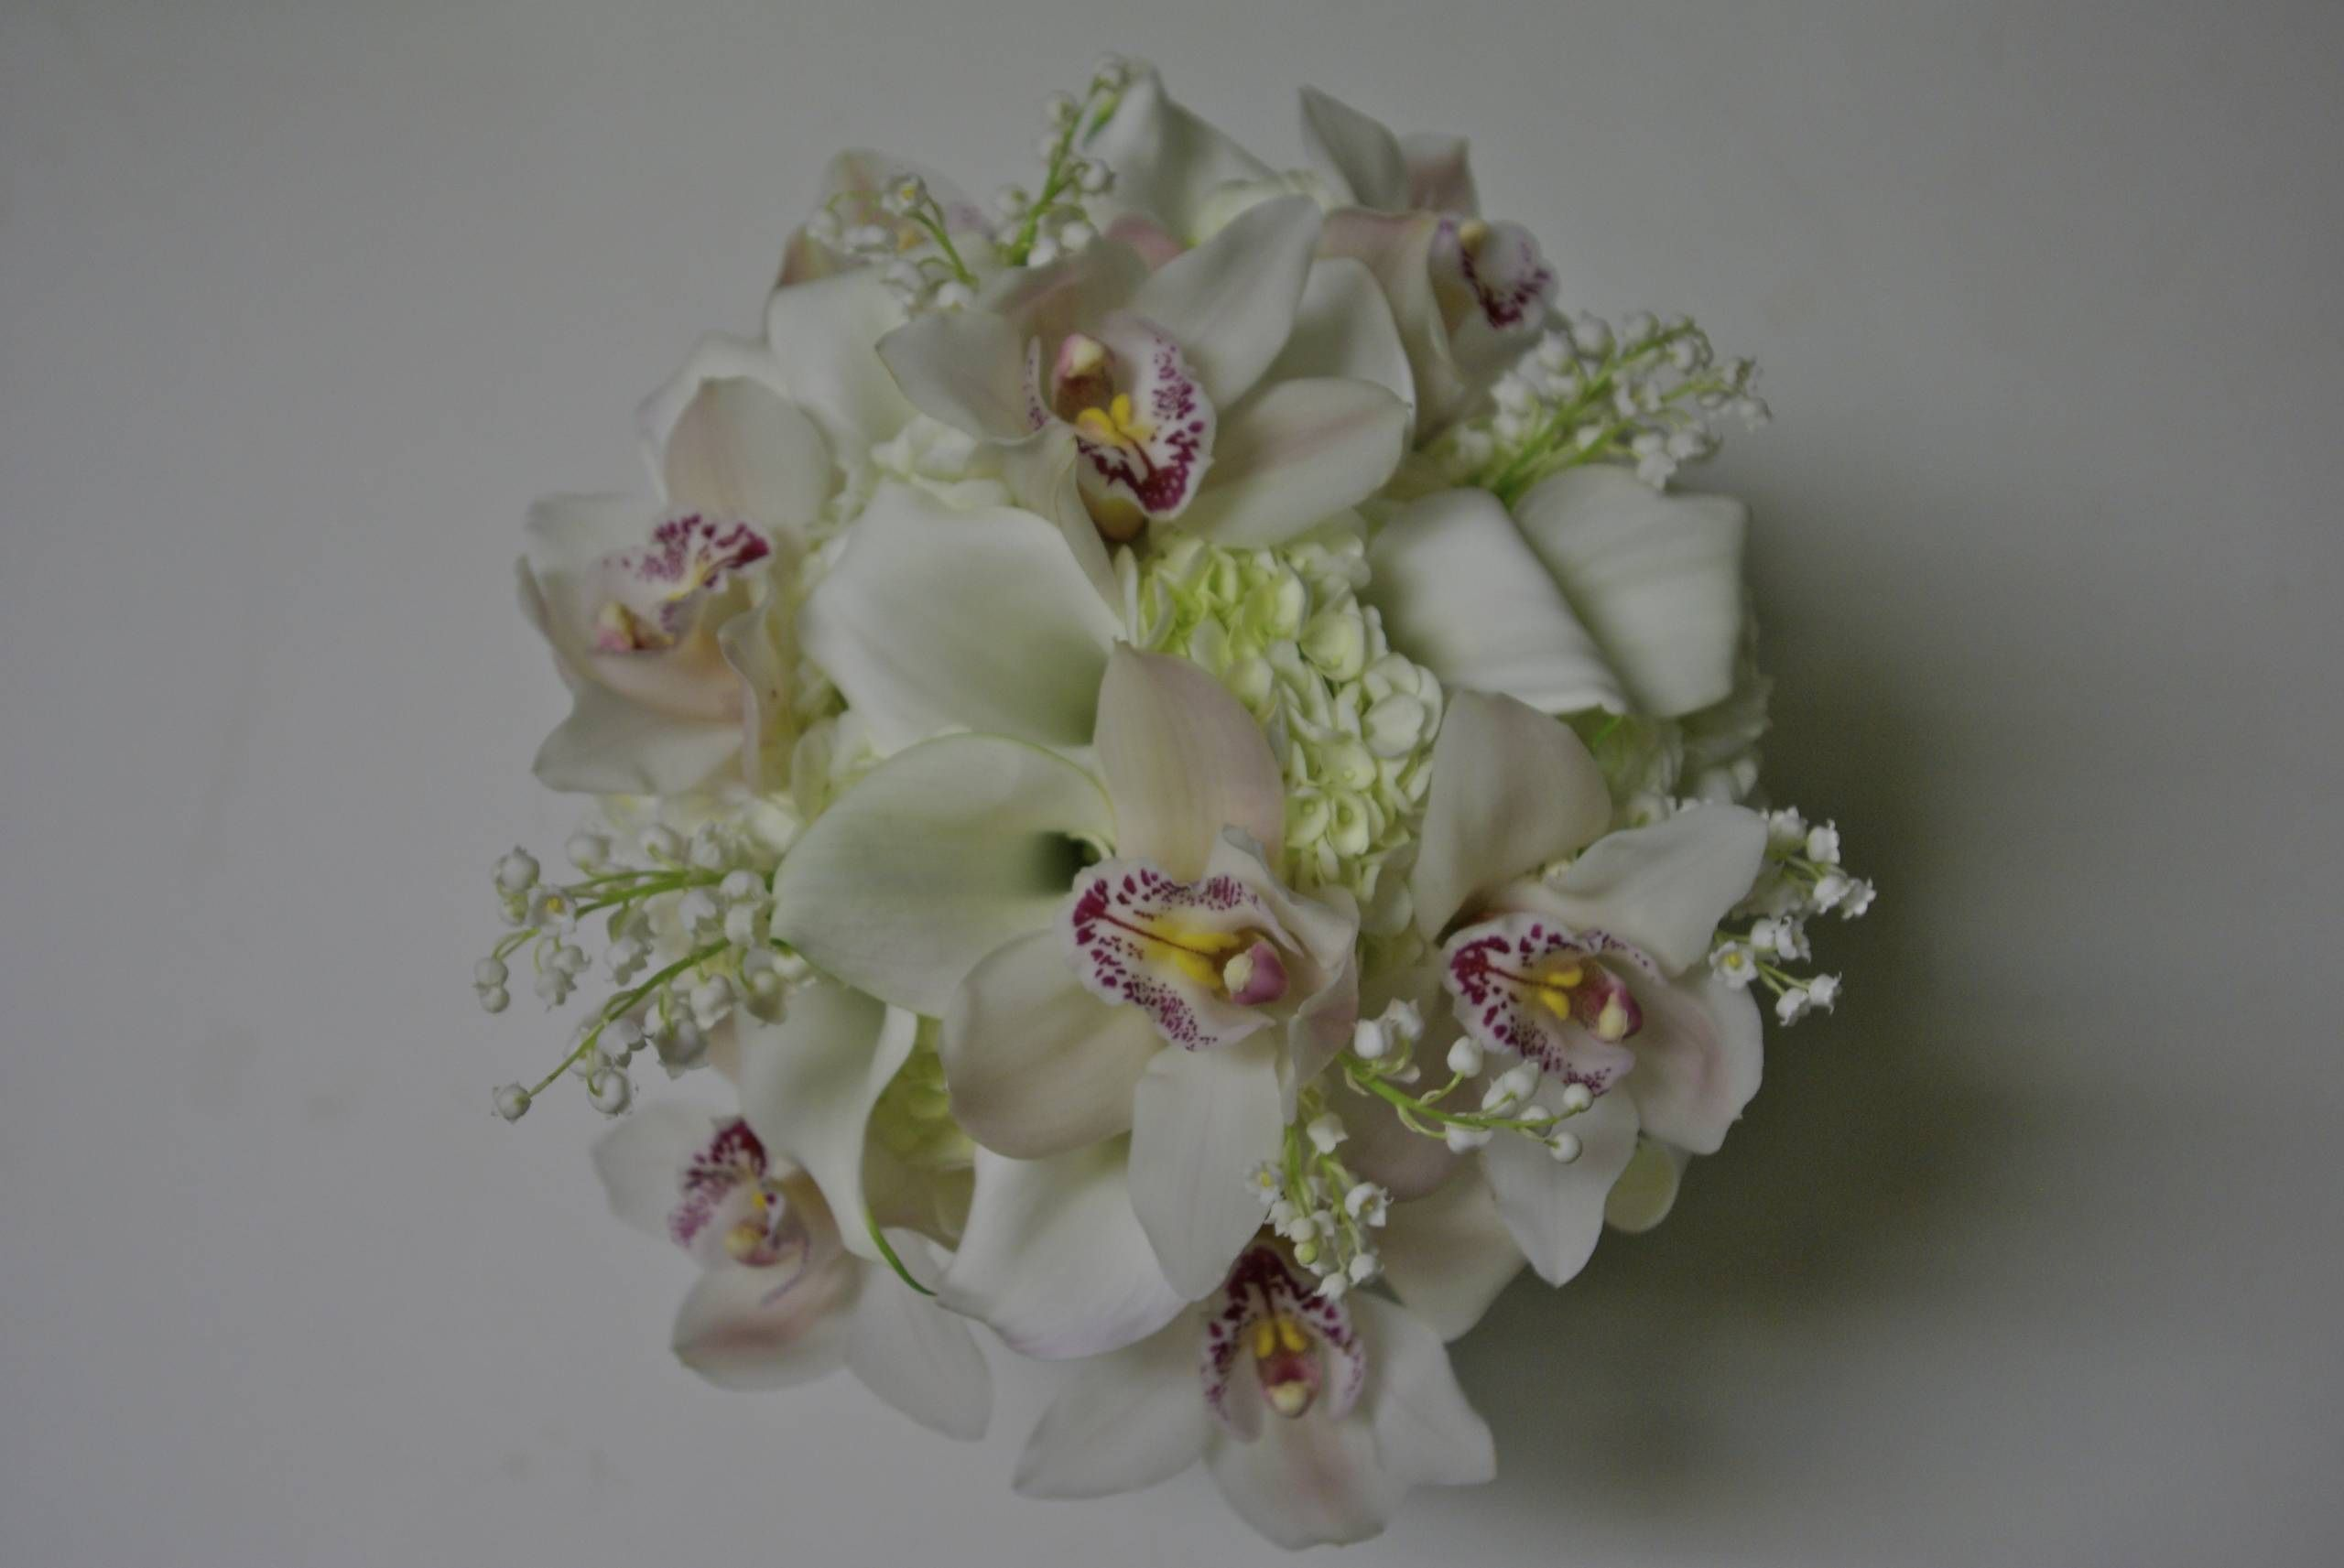 Orchids, Calla Lily, Hydrangea, Lily of the Valley Bridal bouquet #winecountryweddings #sonomaweddings #napaweddings